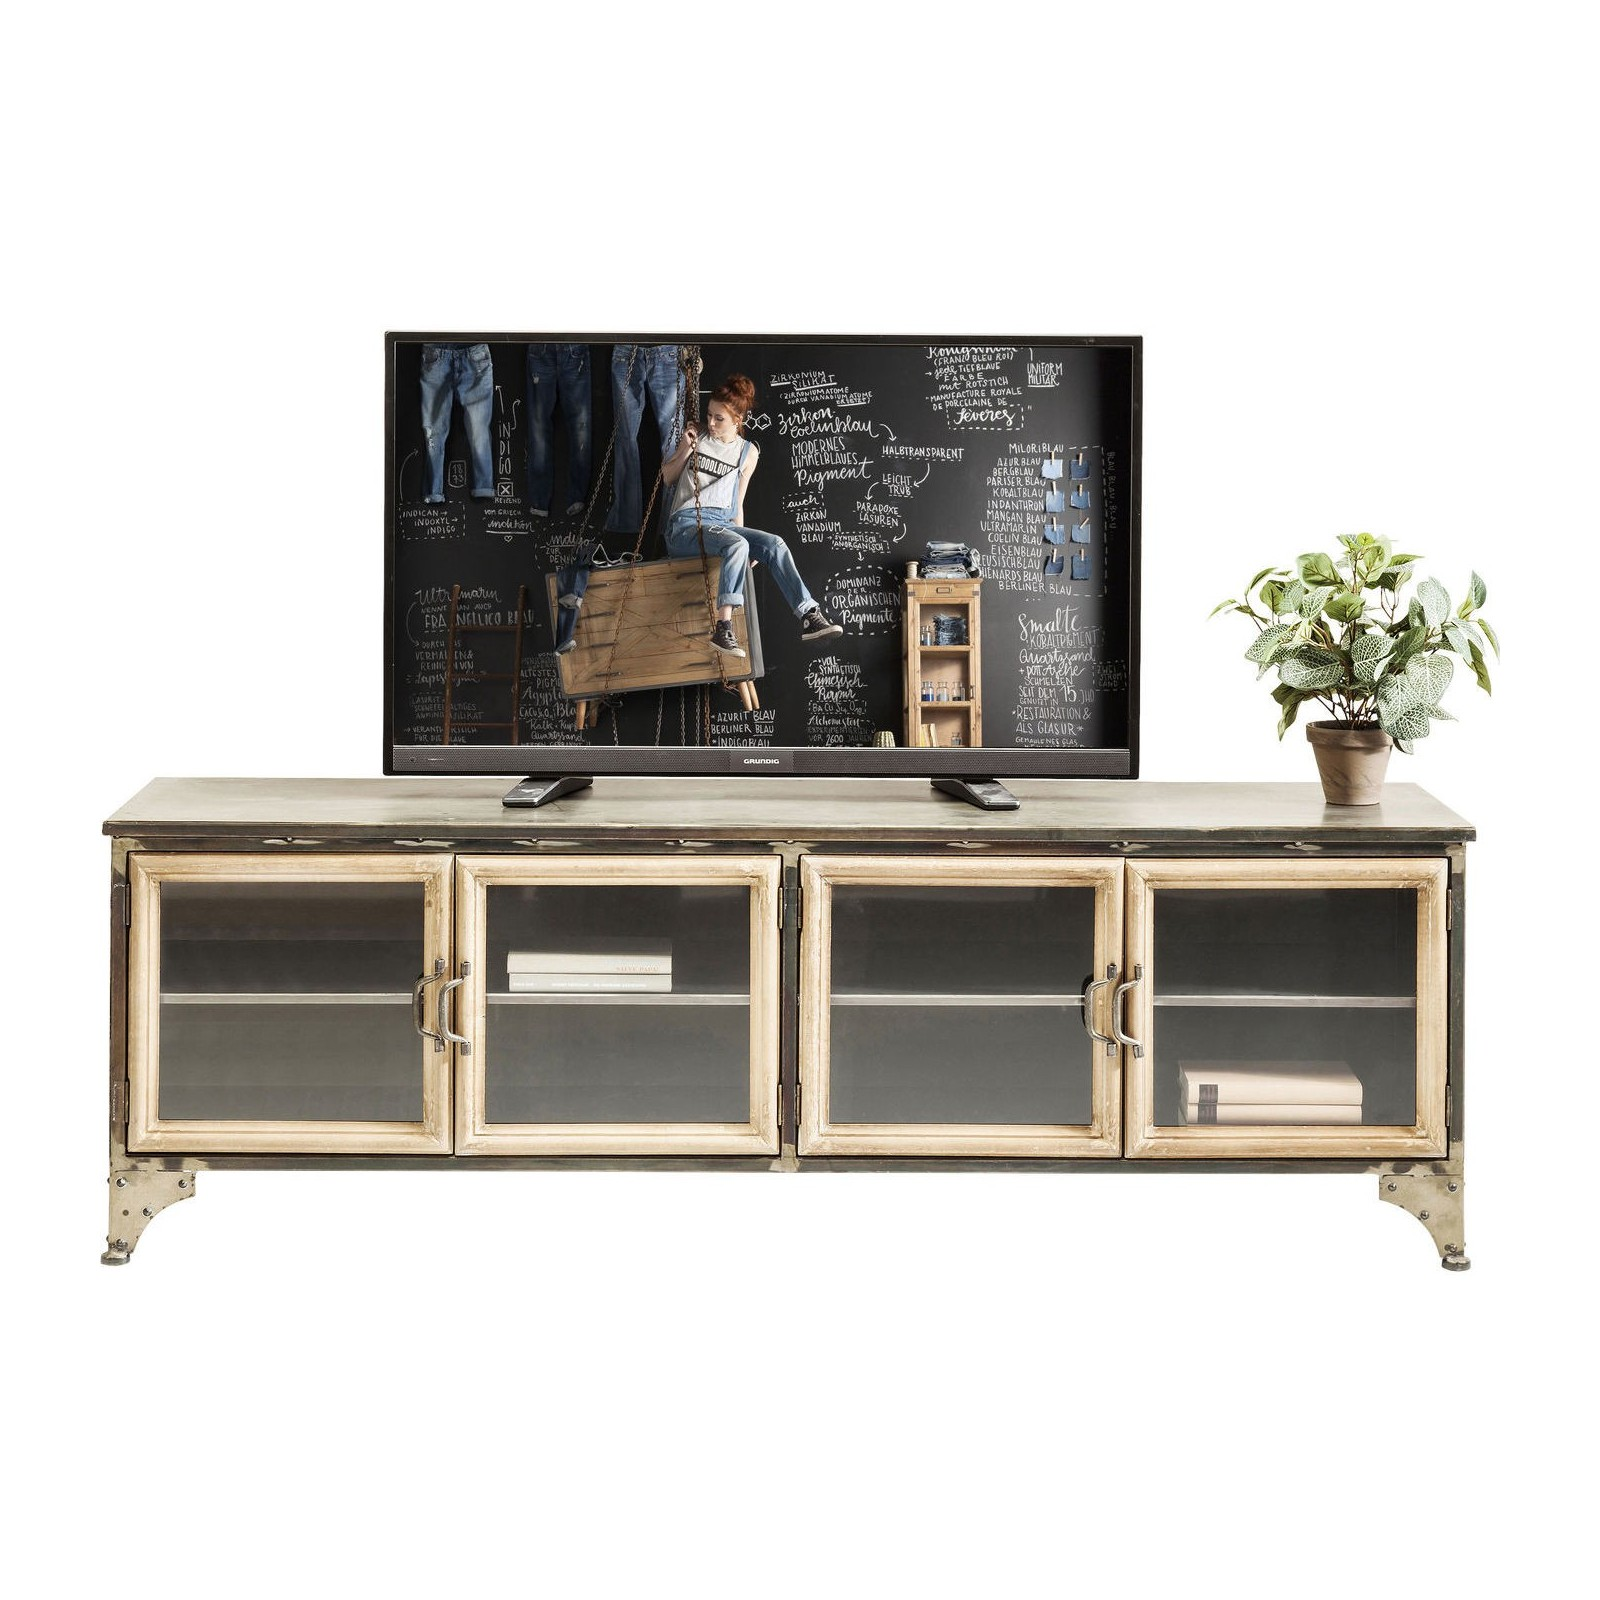 Meuble Tv Industriel Gris Kondor Kare Design # Meuble Tv Metal Gris